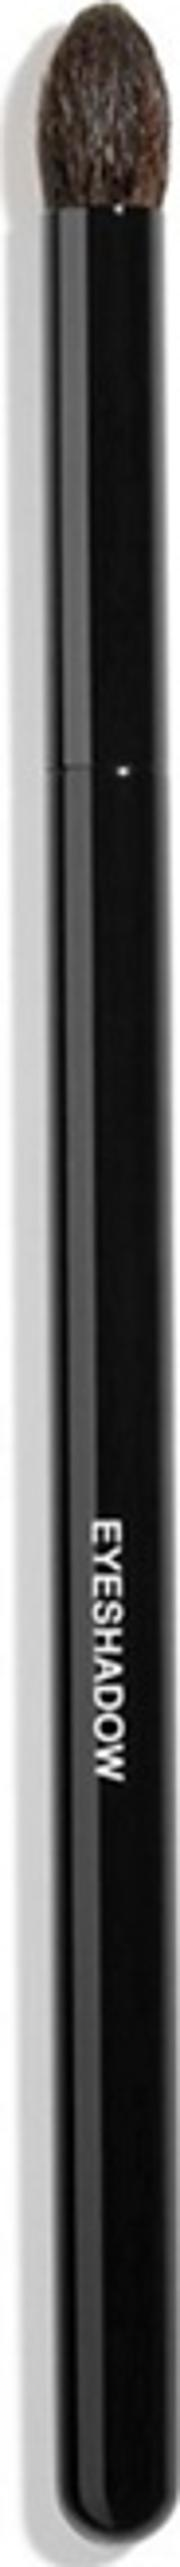 Pinceau Ombreur Rond Rounded Eyeshadow Brush